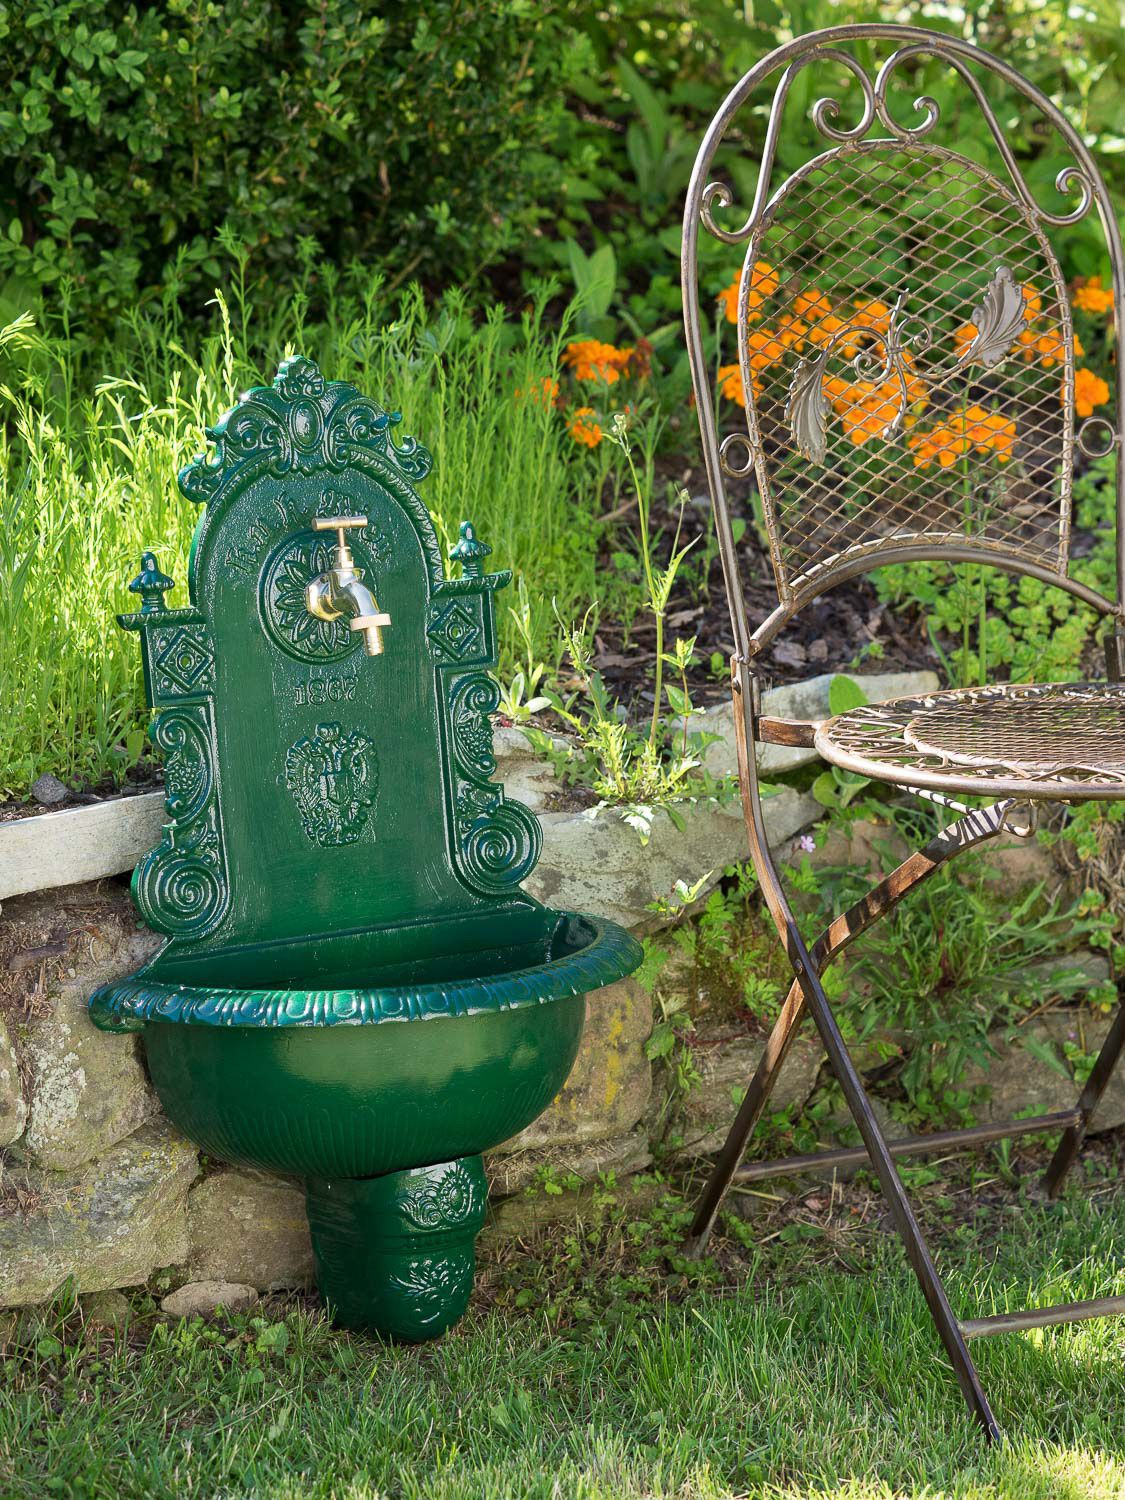 waschbecken brunnen wandbrunnen 72 5cm aluminium garten antik stil gr n fountain ebay. Black Bedroom Furniture Sets. Home Design Ideas